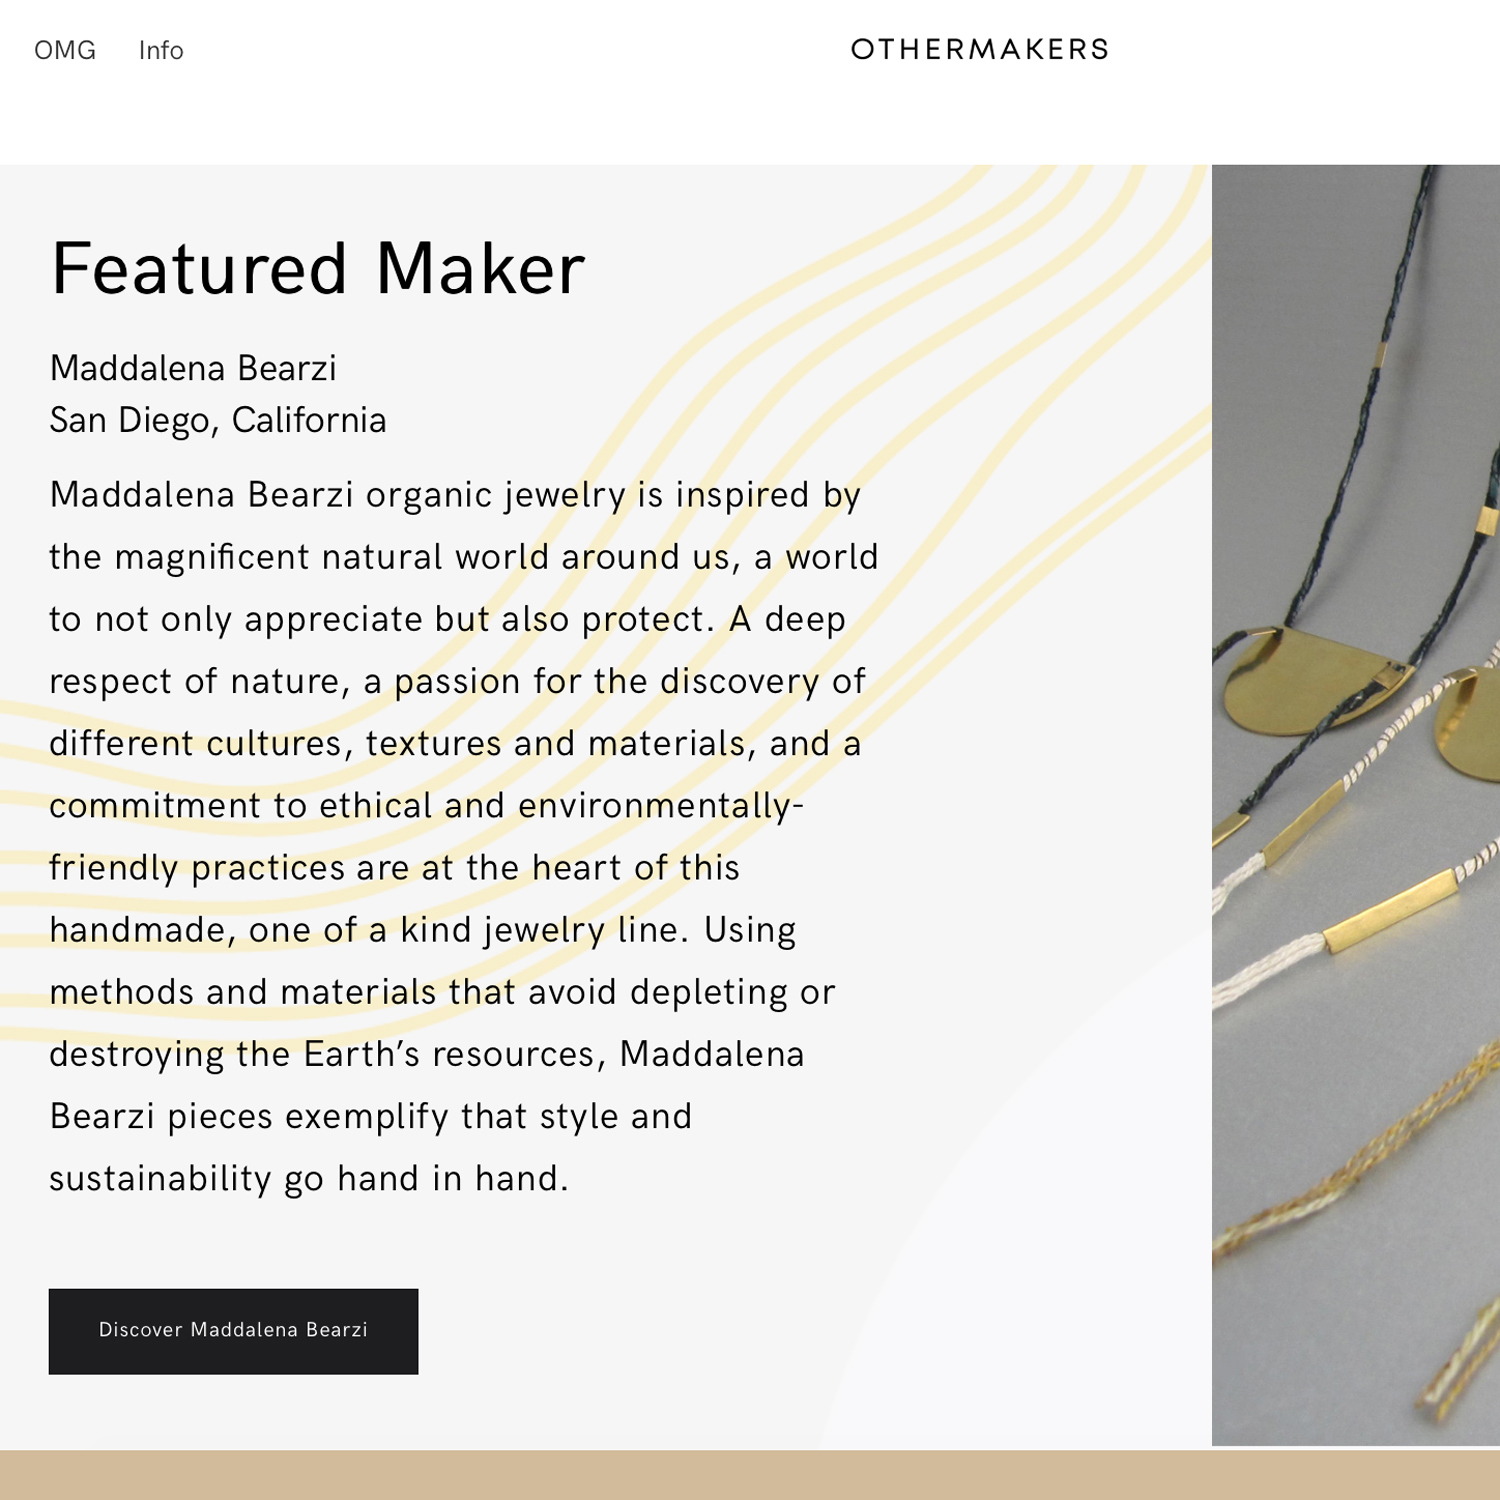 OTHER MAKERS